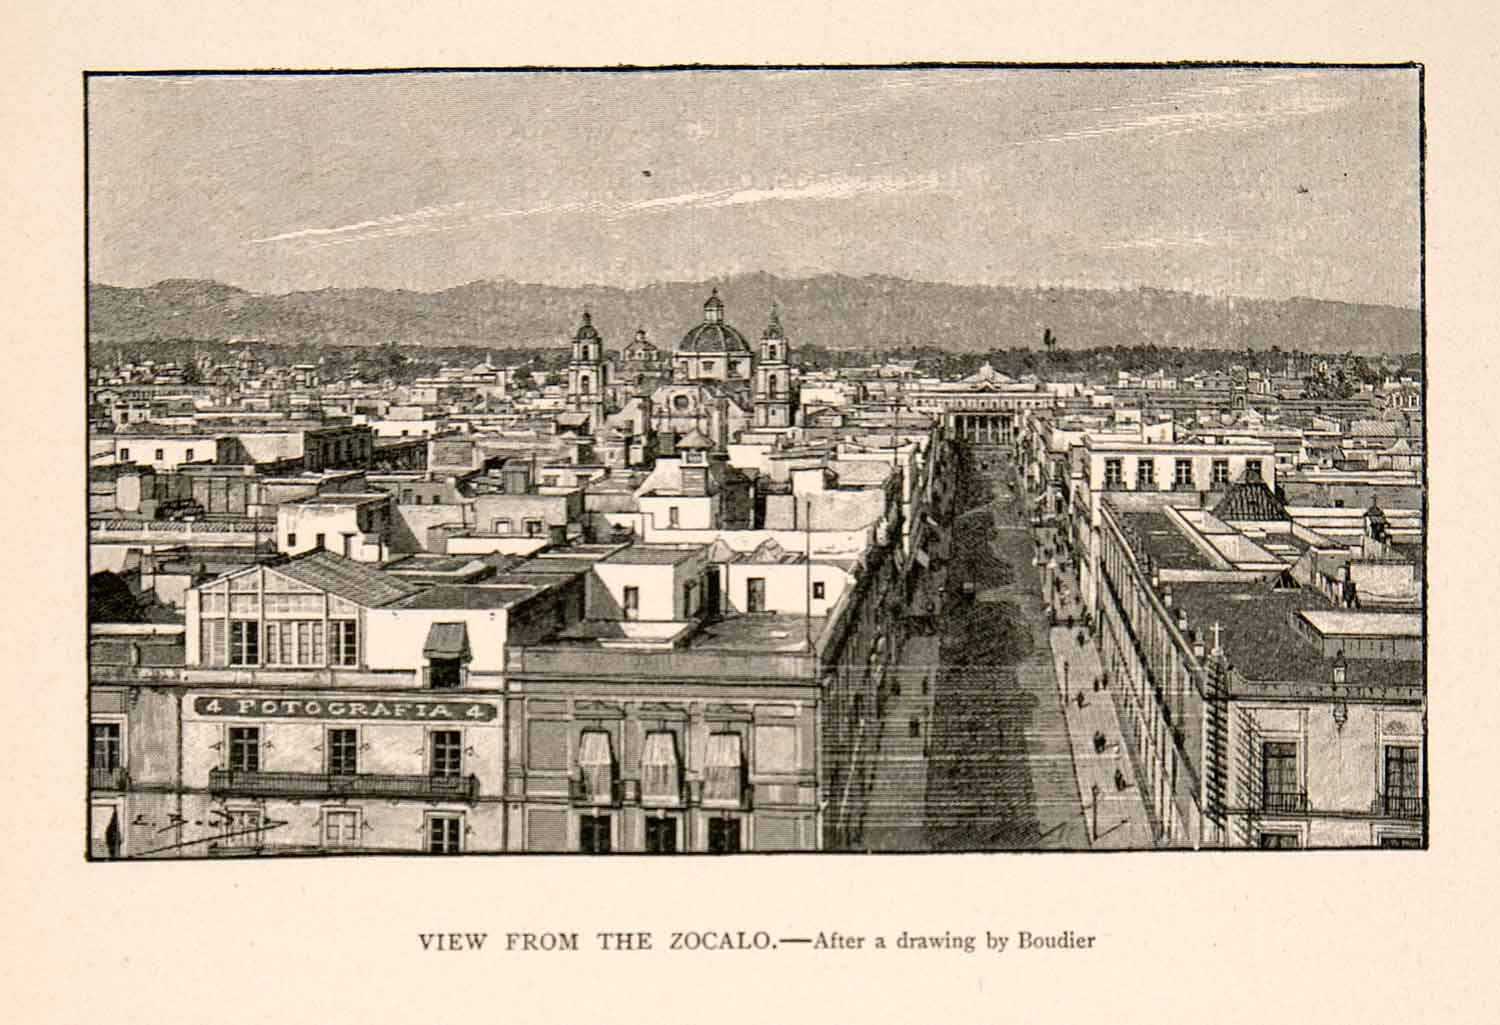 1894 Print Mexico City Zocalo Plaza Arms Square Vista Catedral Cathedral XGGC5